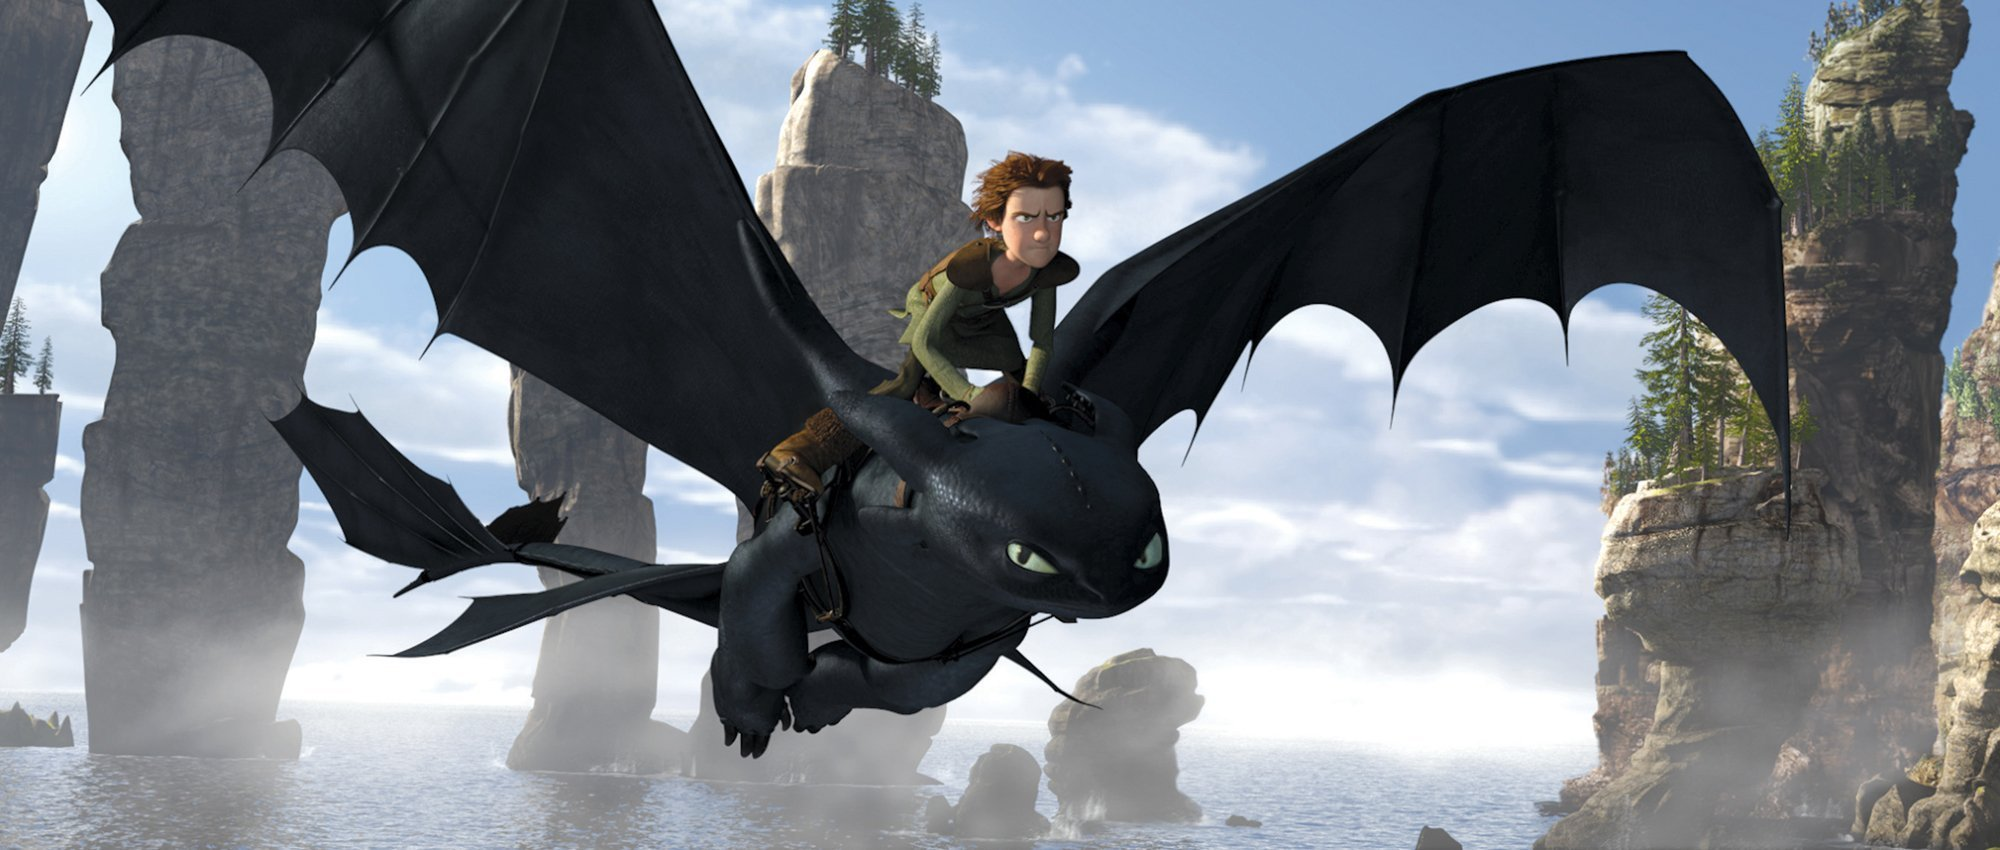 https://i0.wp.com/images2.fanpop.com/image/photos/9600000/Hiccup-Toothless-how-to-train-your-dragon-9626230-2000-850.jpg